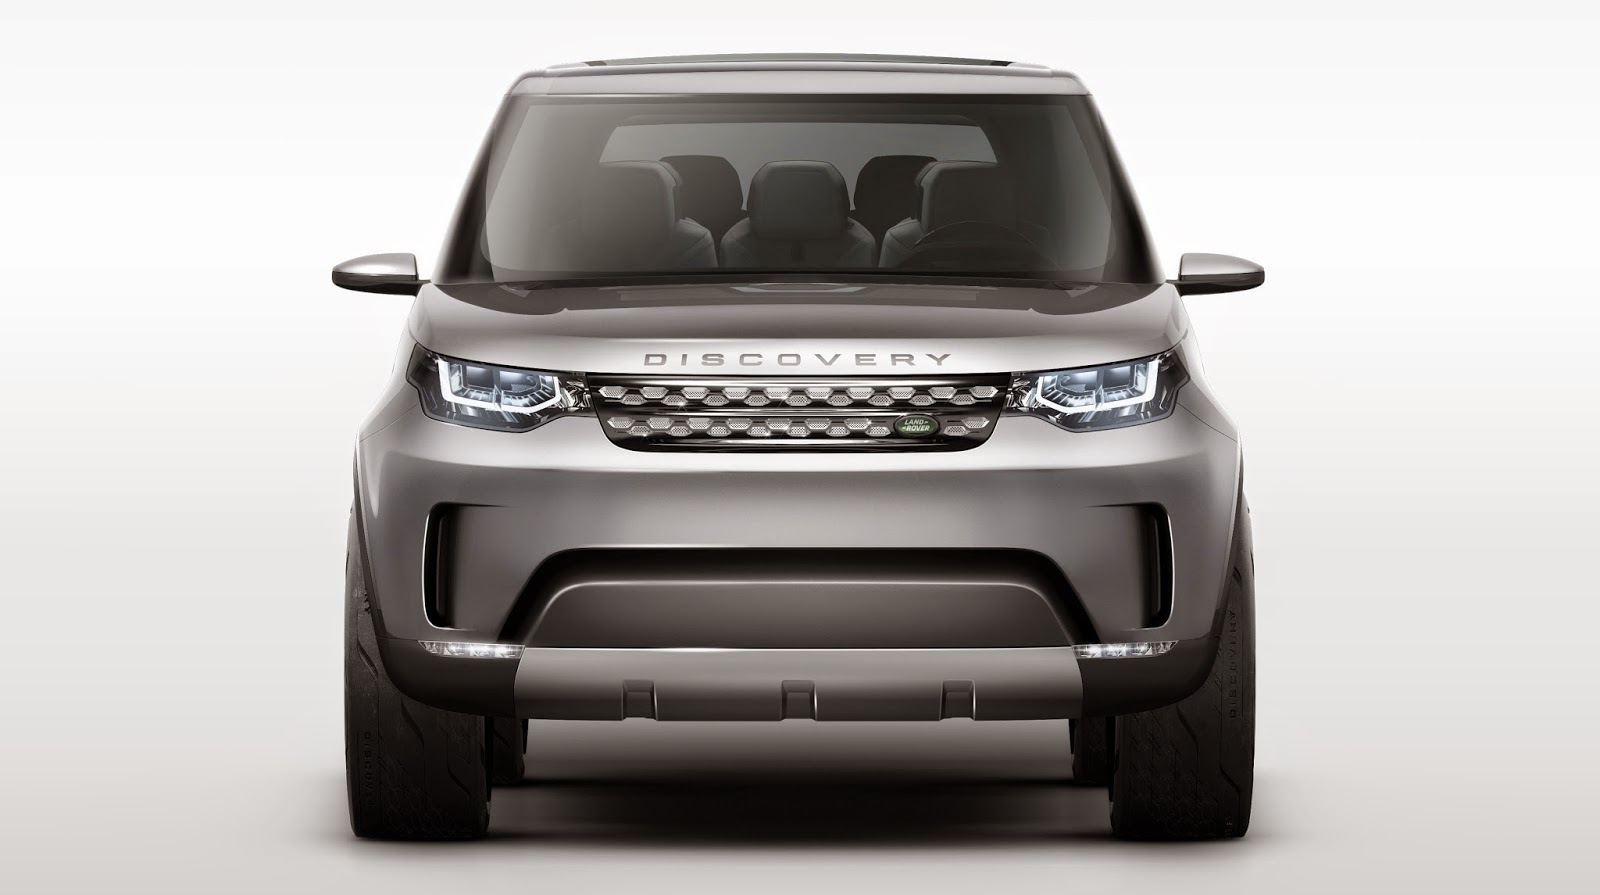 Land Rover Discovery 4 L319 Lr4 2015 Owner S Handbook Manual